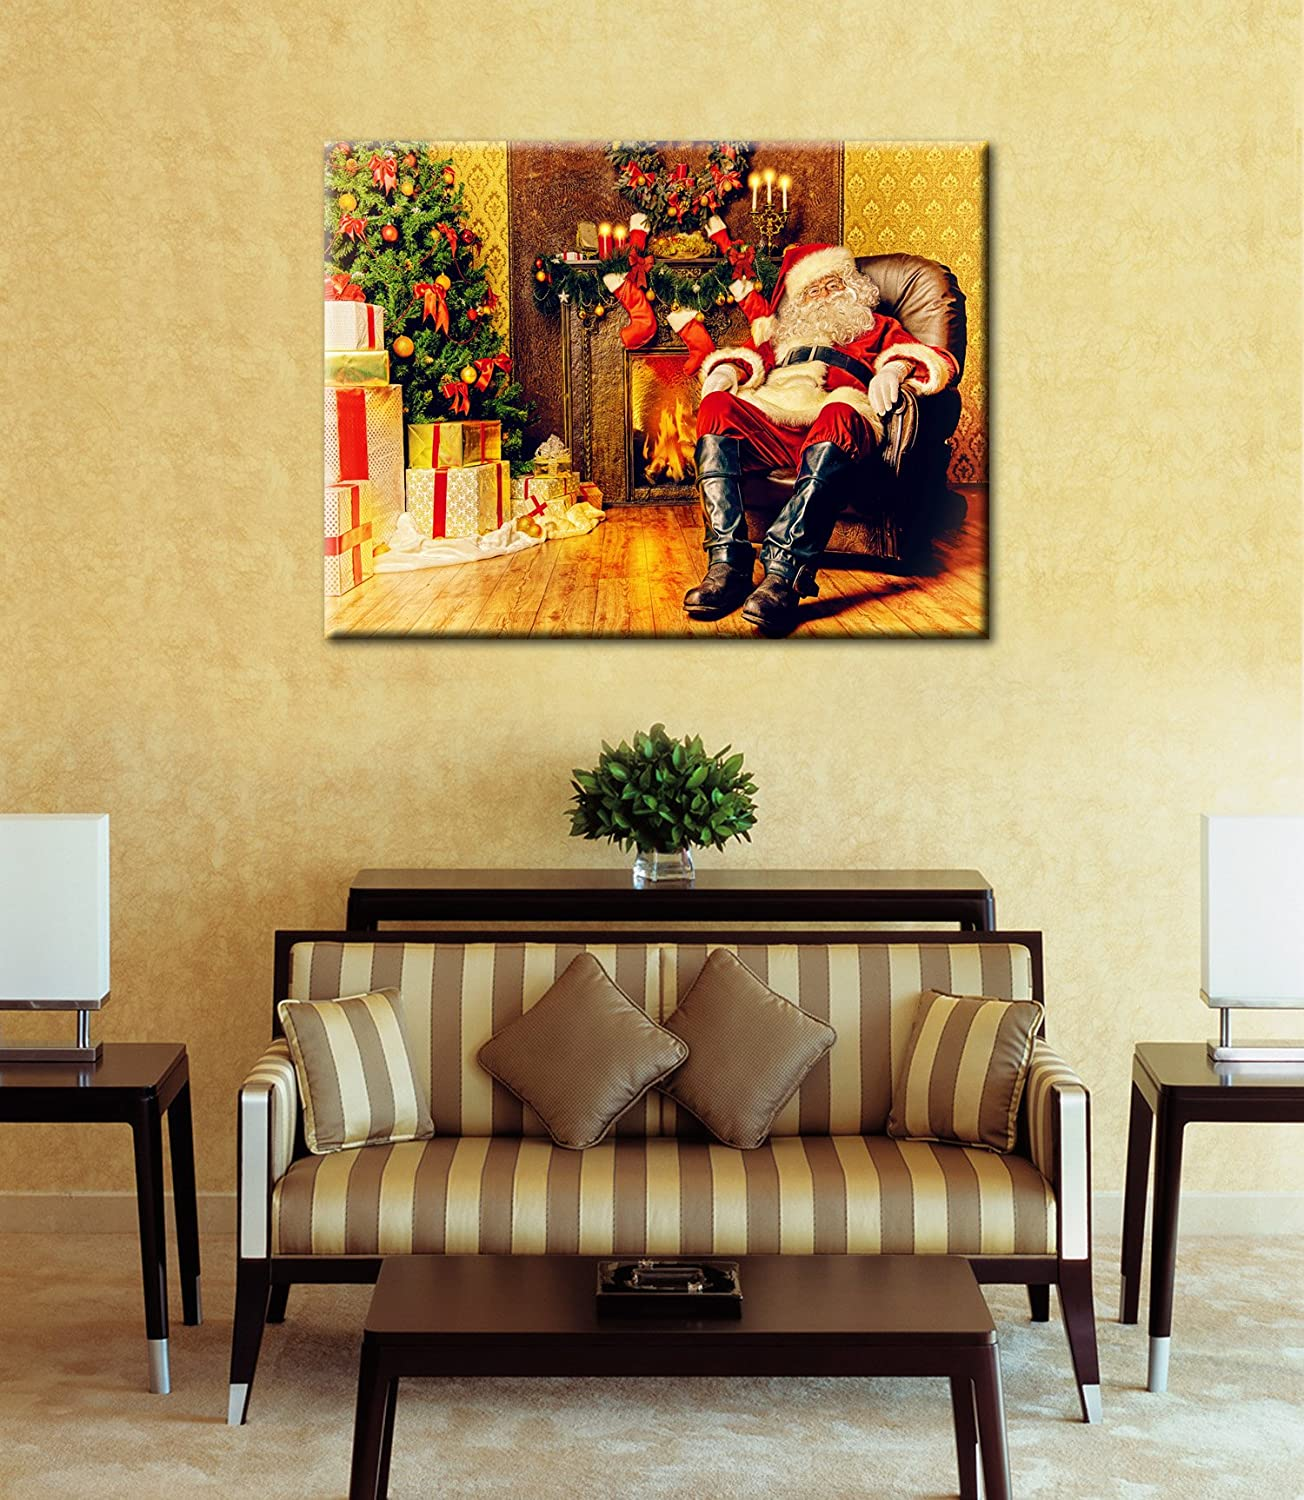 Amazon.com: Christmas Decoration Santa Claus Special Lighted Canvas ...